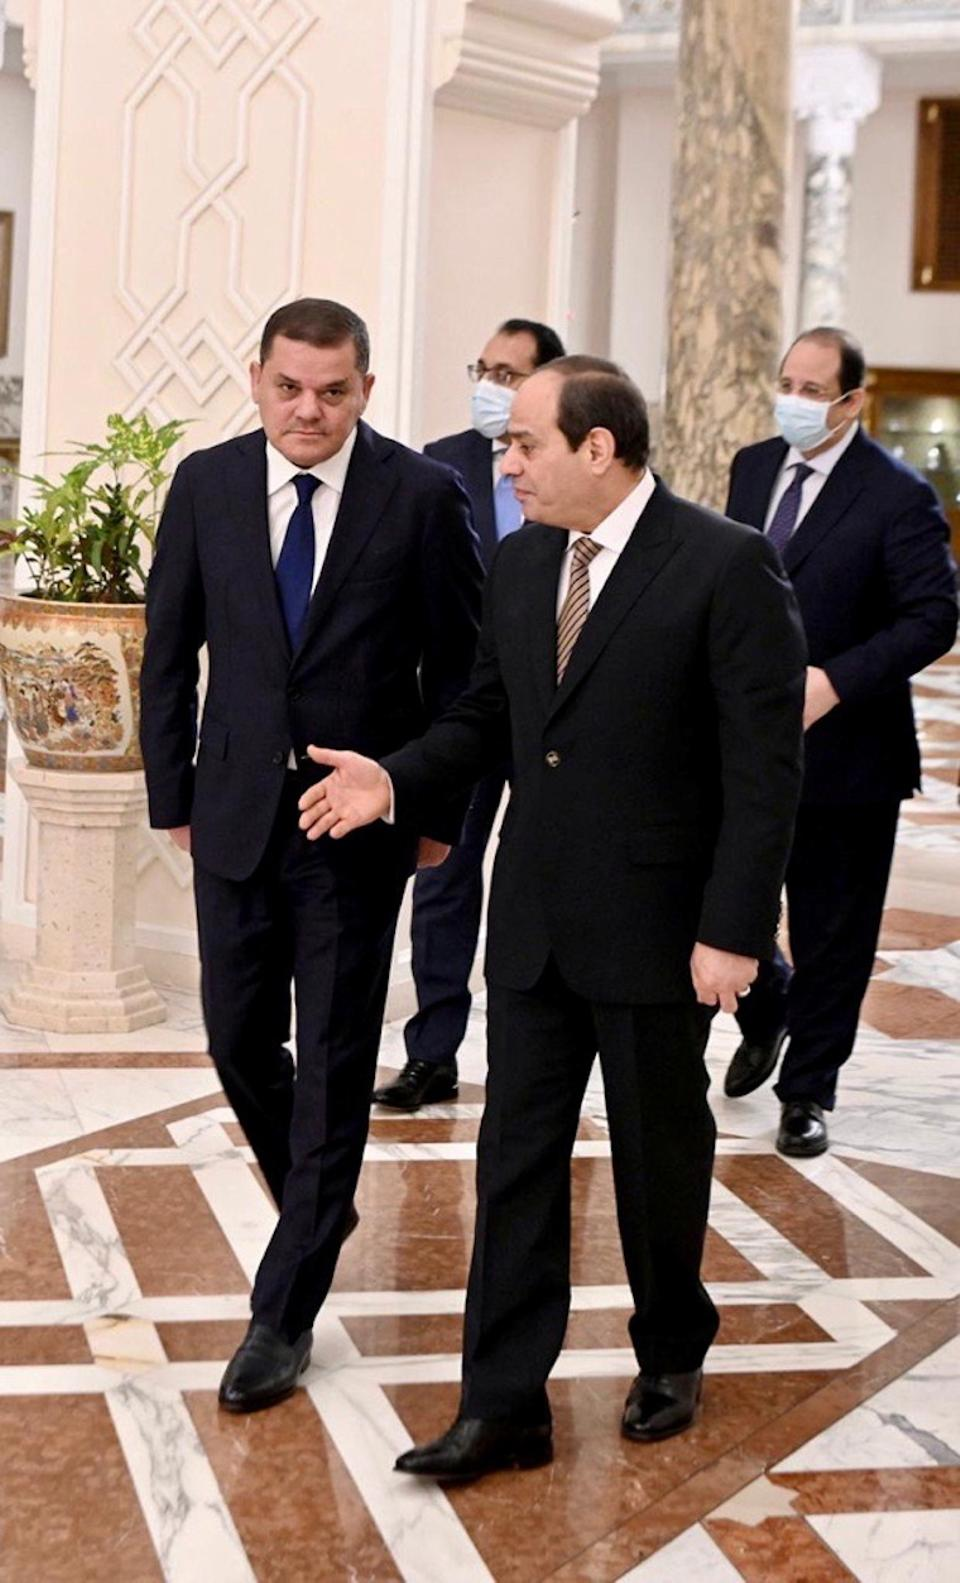 Libyan Prime Minister Abdulhamid Dbeibeh walks with Egypt's President Abdel Fattah al-Sisi during their meeting in at the Presidential Palace in Cairo, Egypt February 18, 2021.